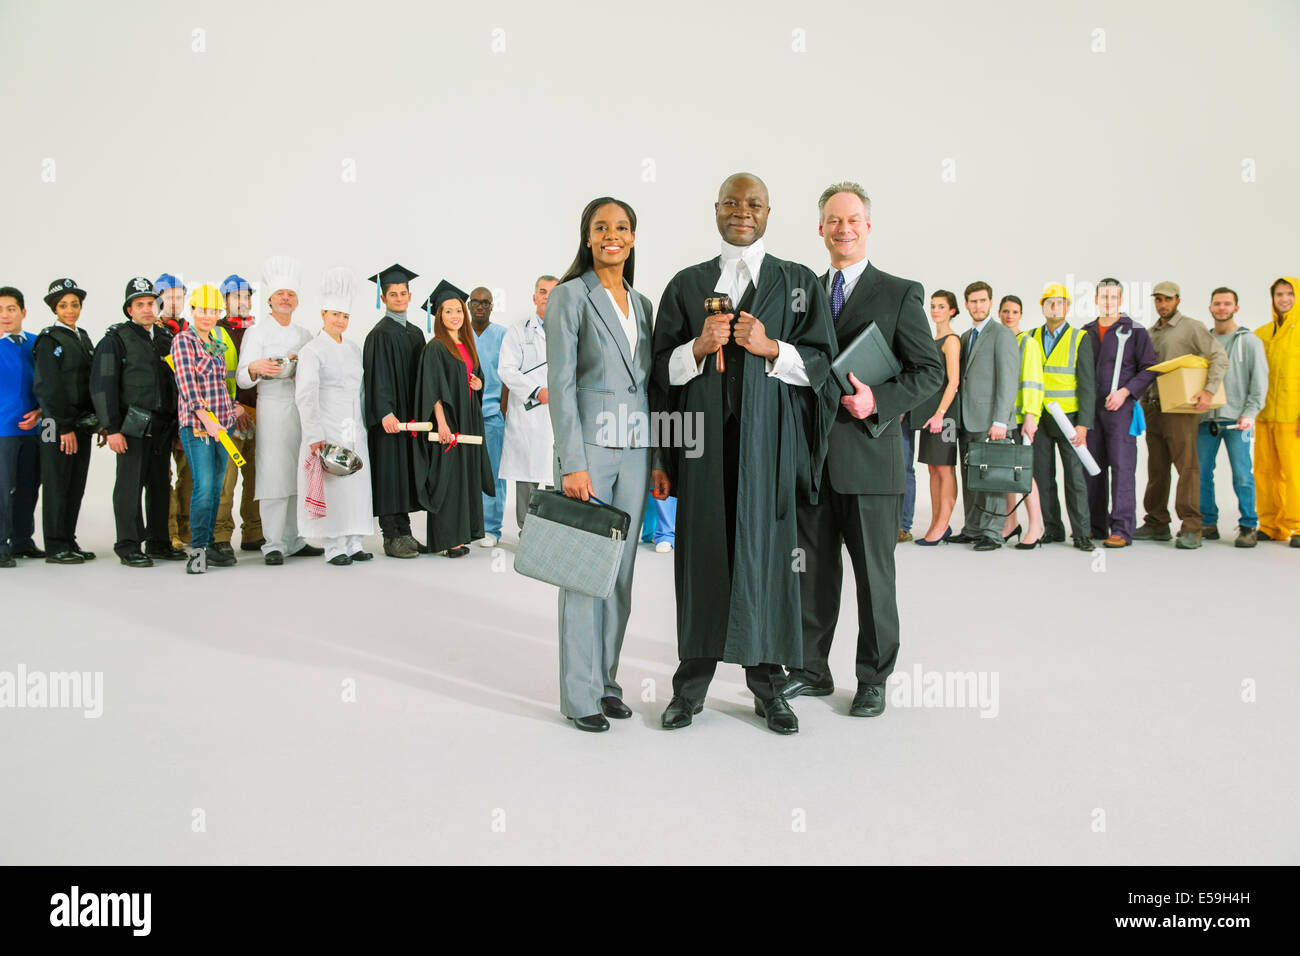 Workforce behind confident judge and lawyers - Stock Image